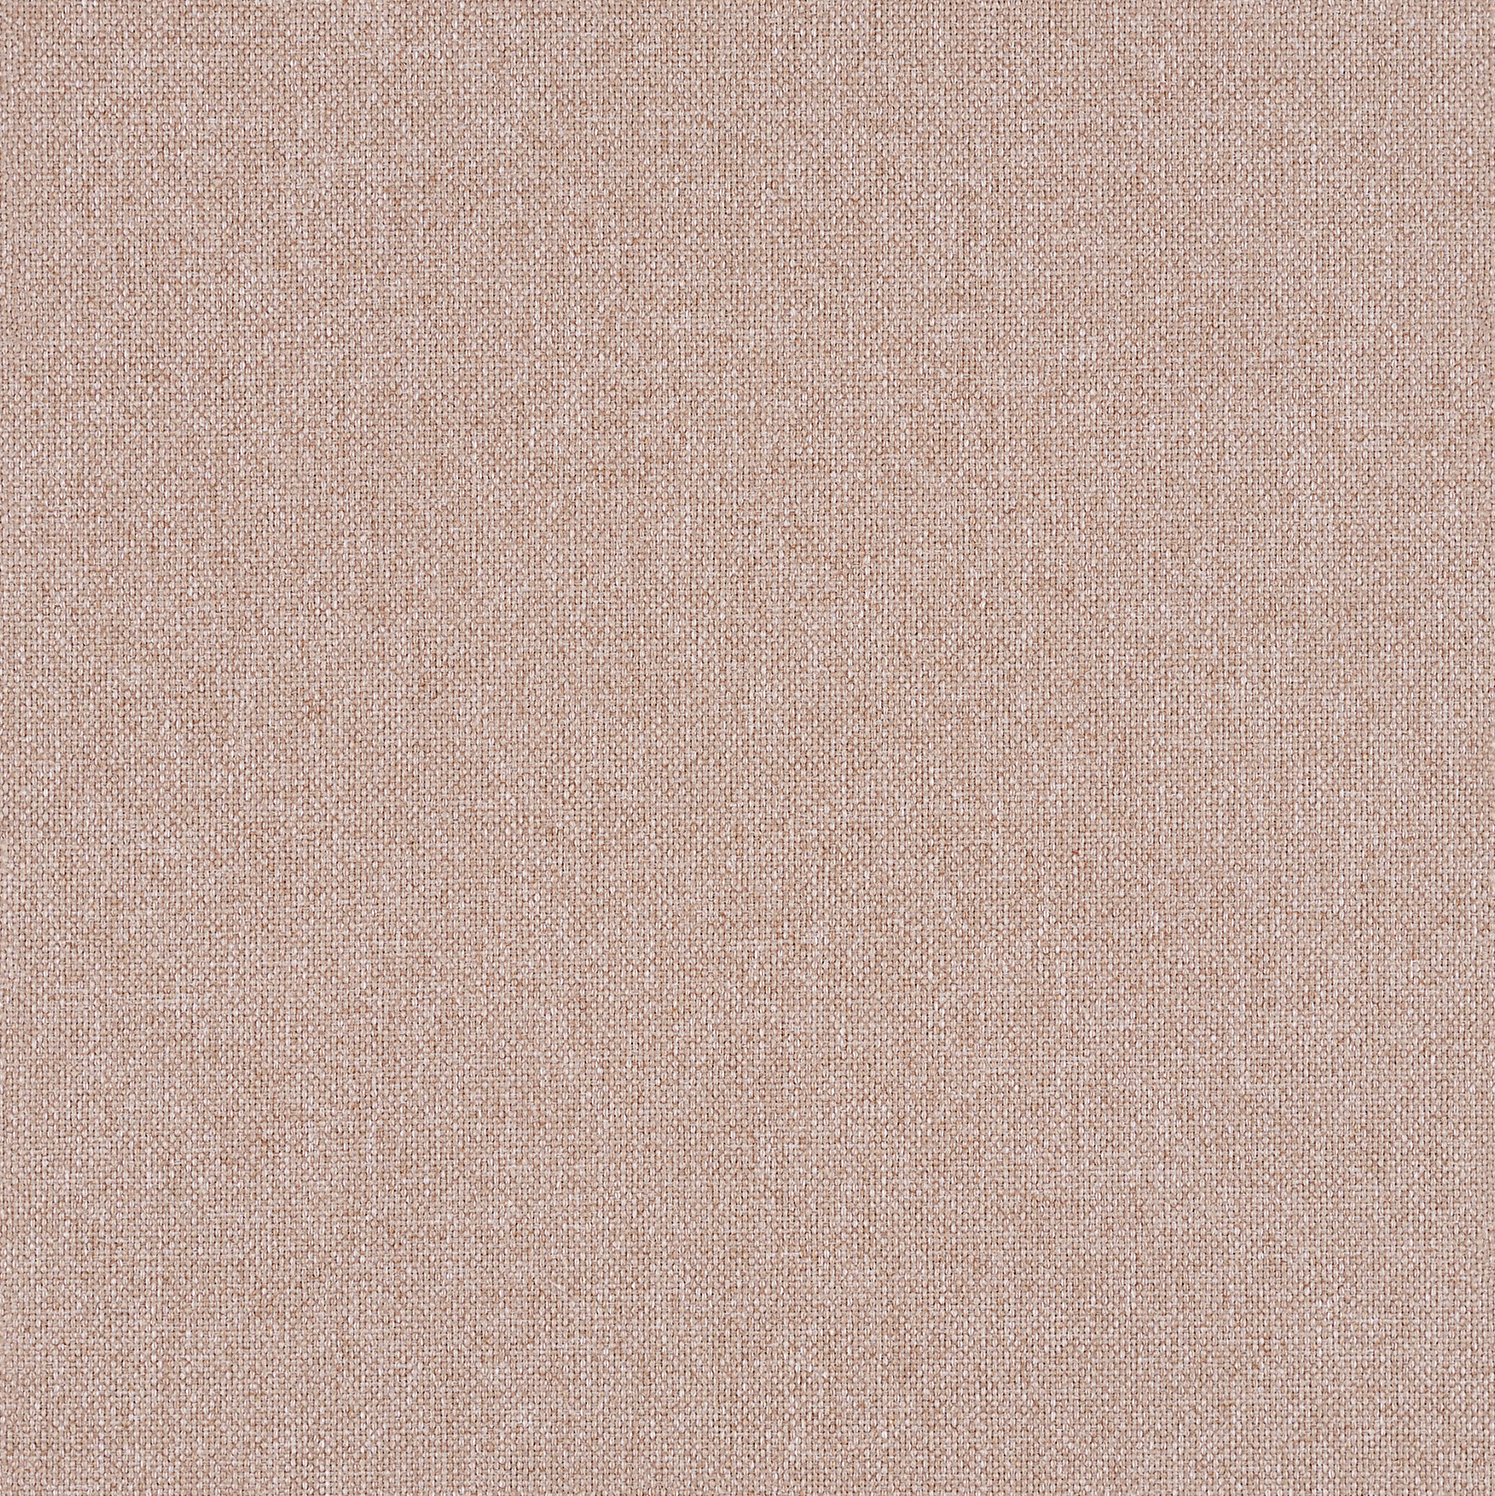 Backdrop - Disperse - 1027 - 03 Tileable Swatches